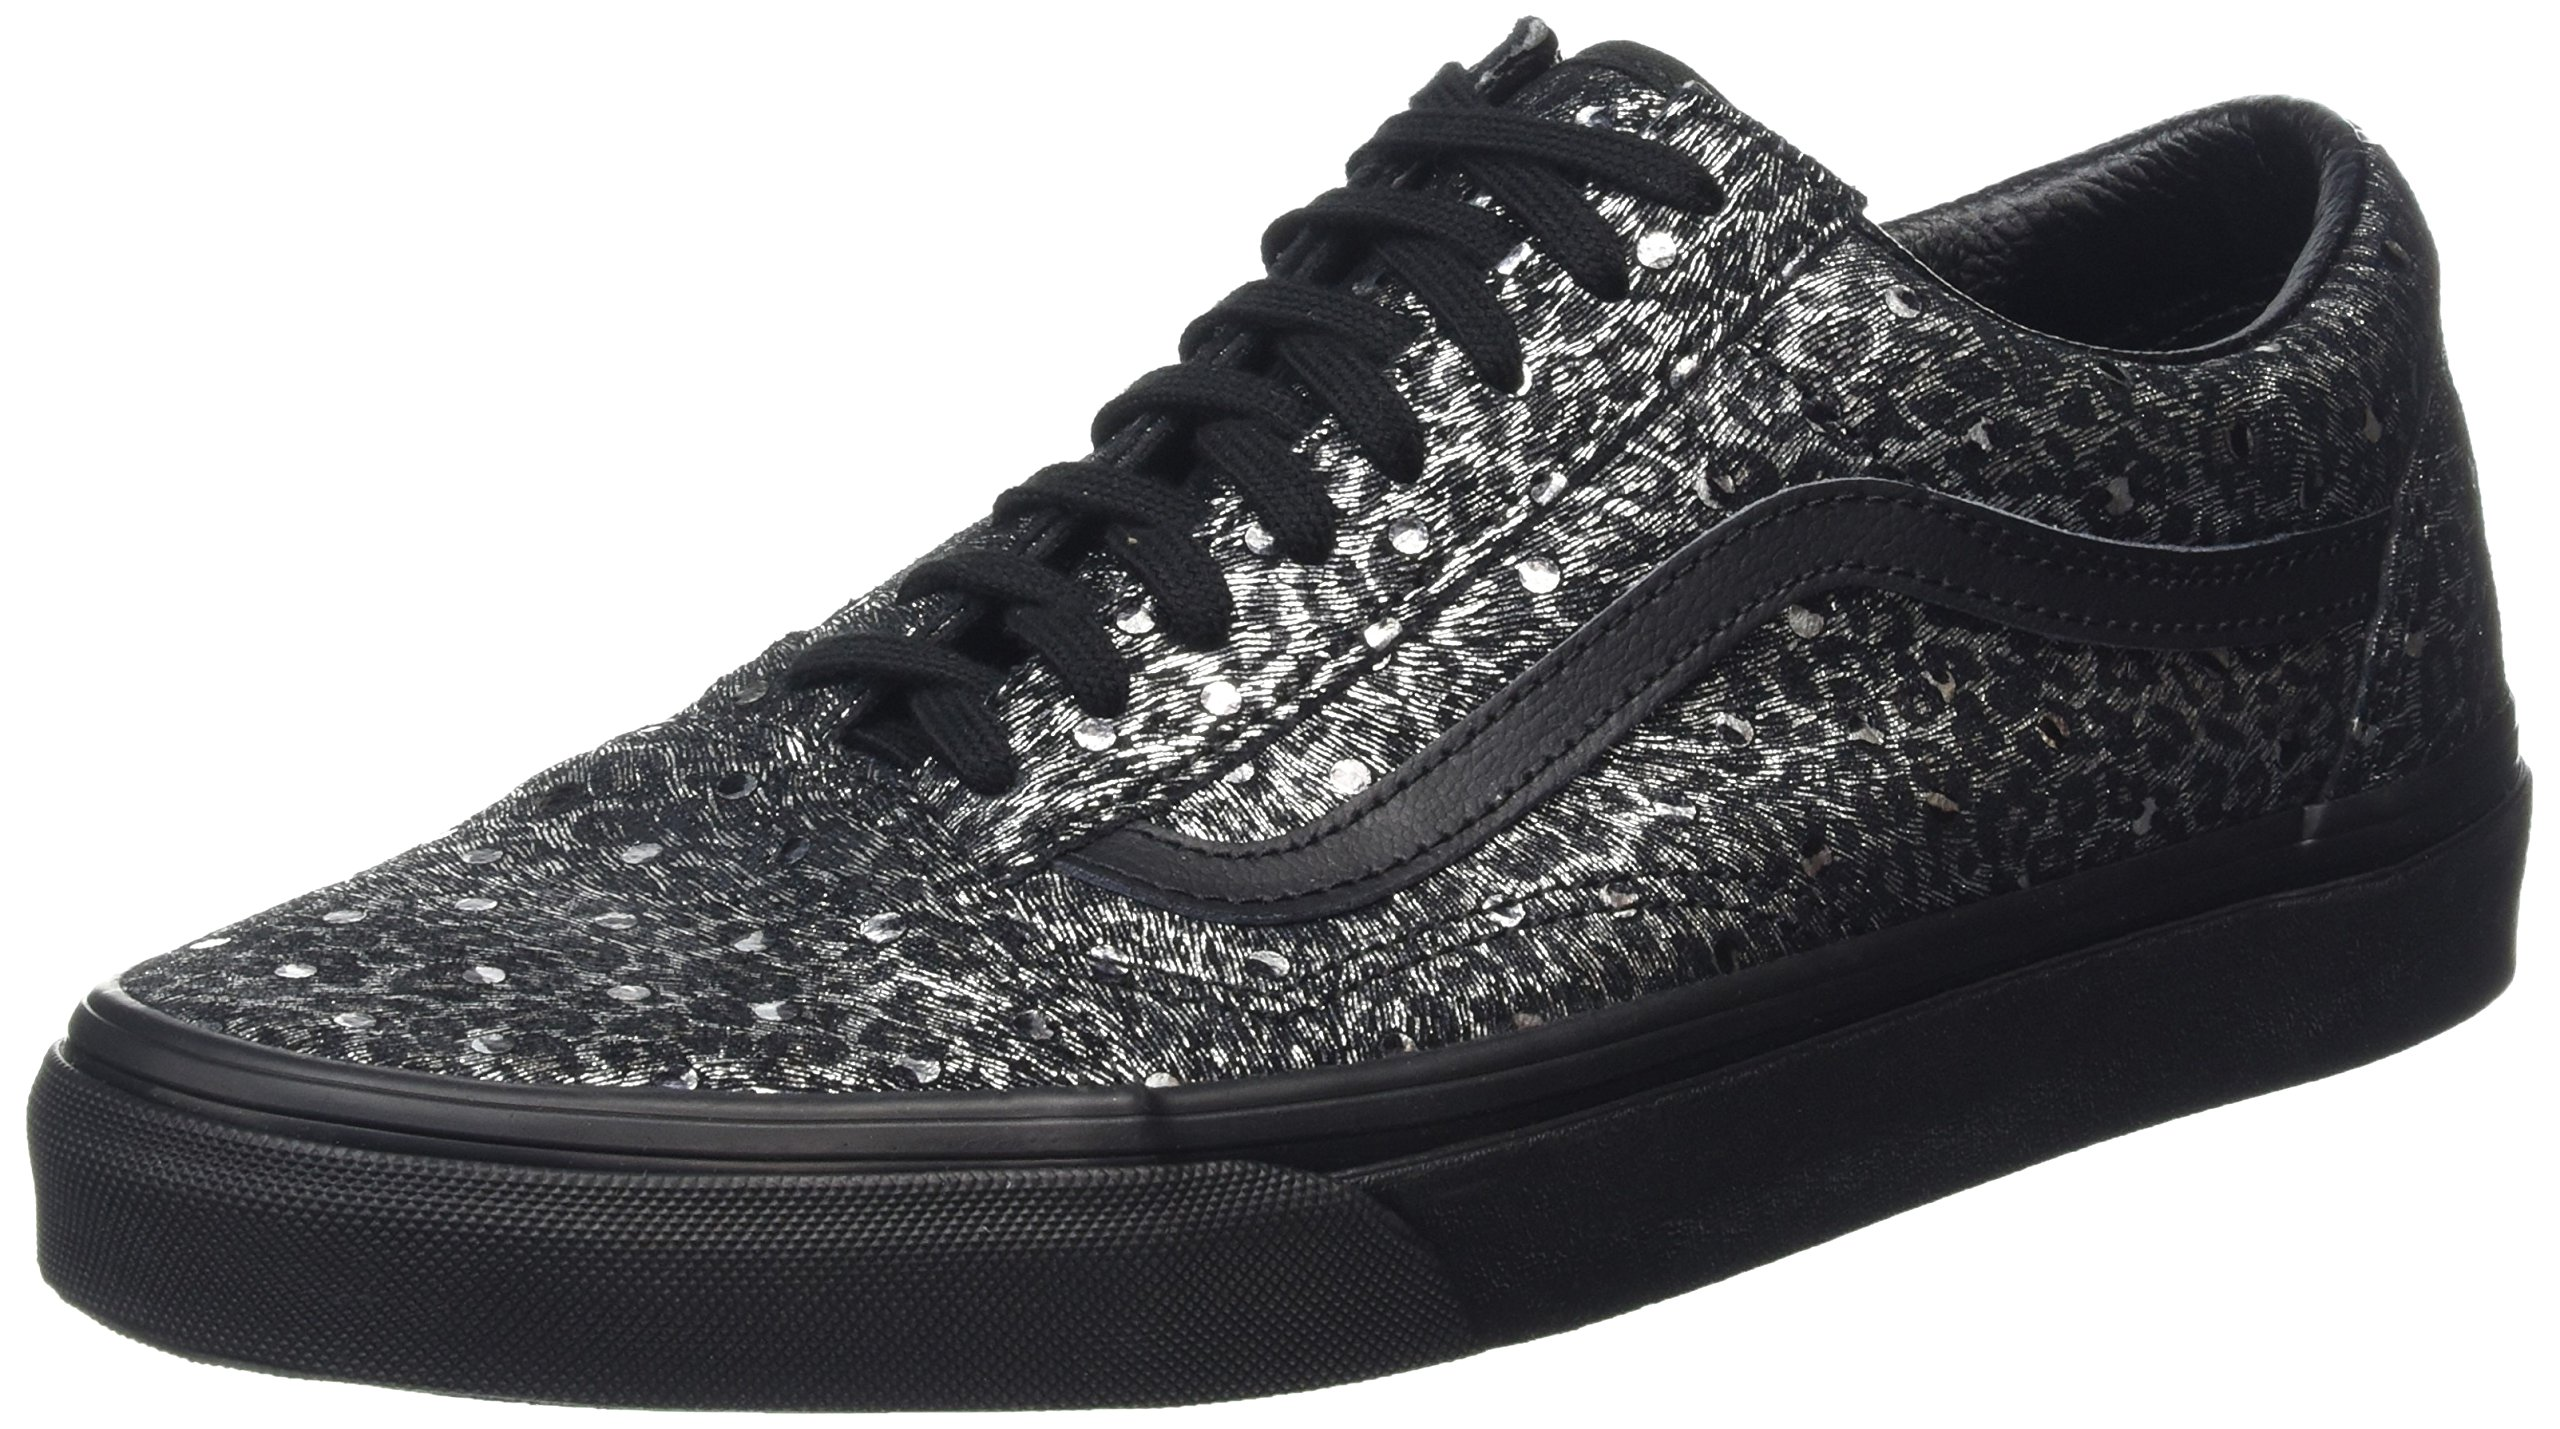 Vans Womens Old Skool Cup (Luxe Tweed) Fabric Low Top Lace up, Black, Size 6.0